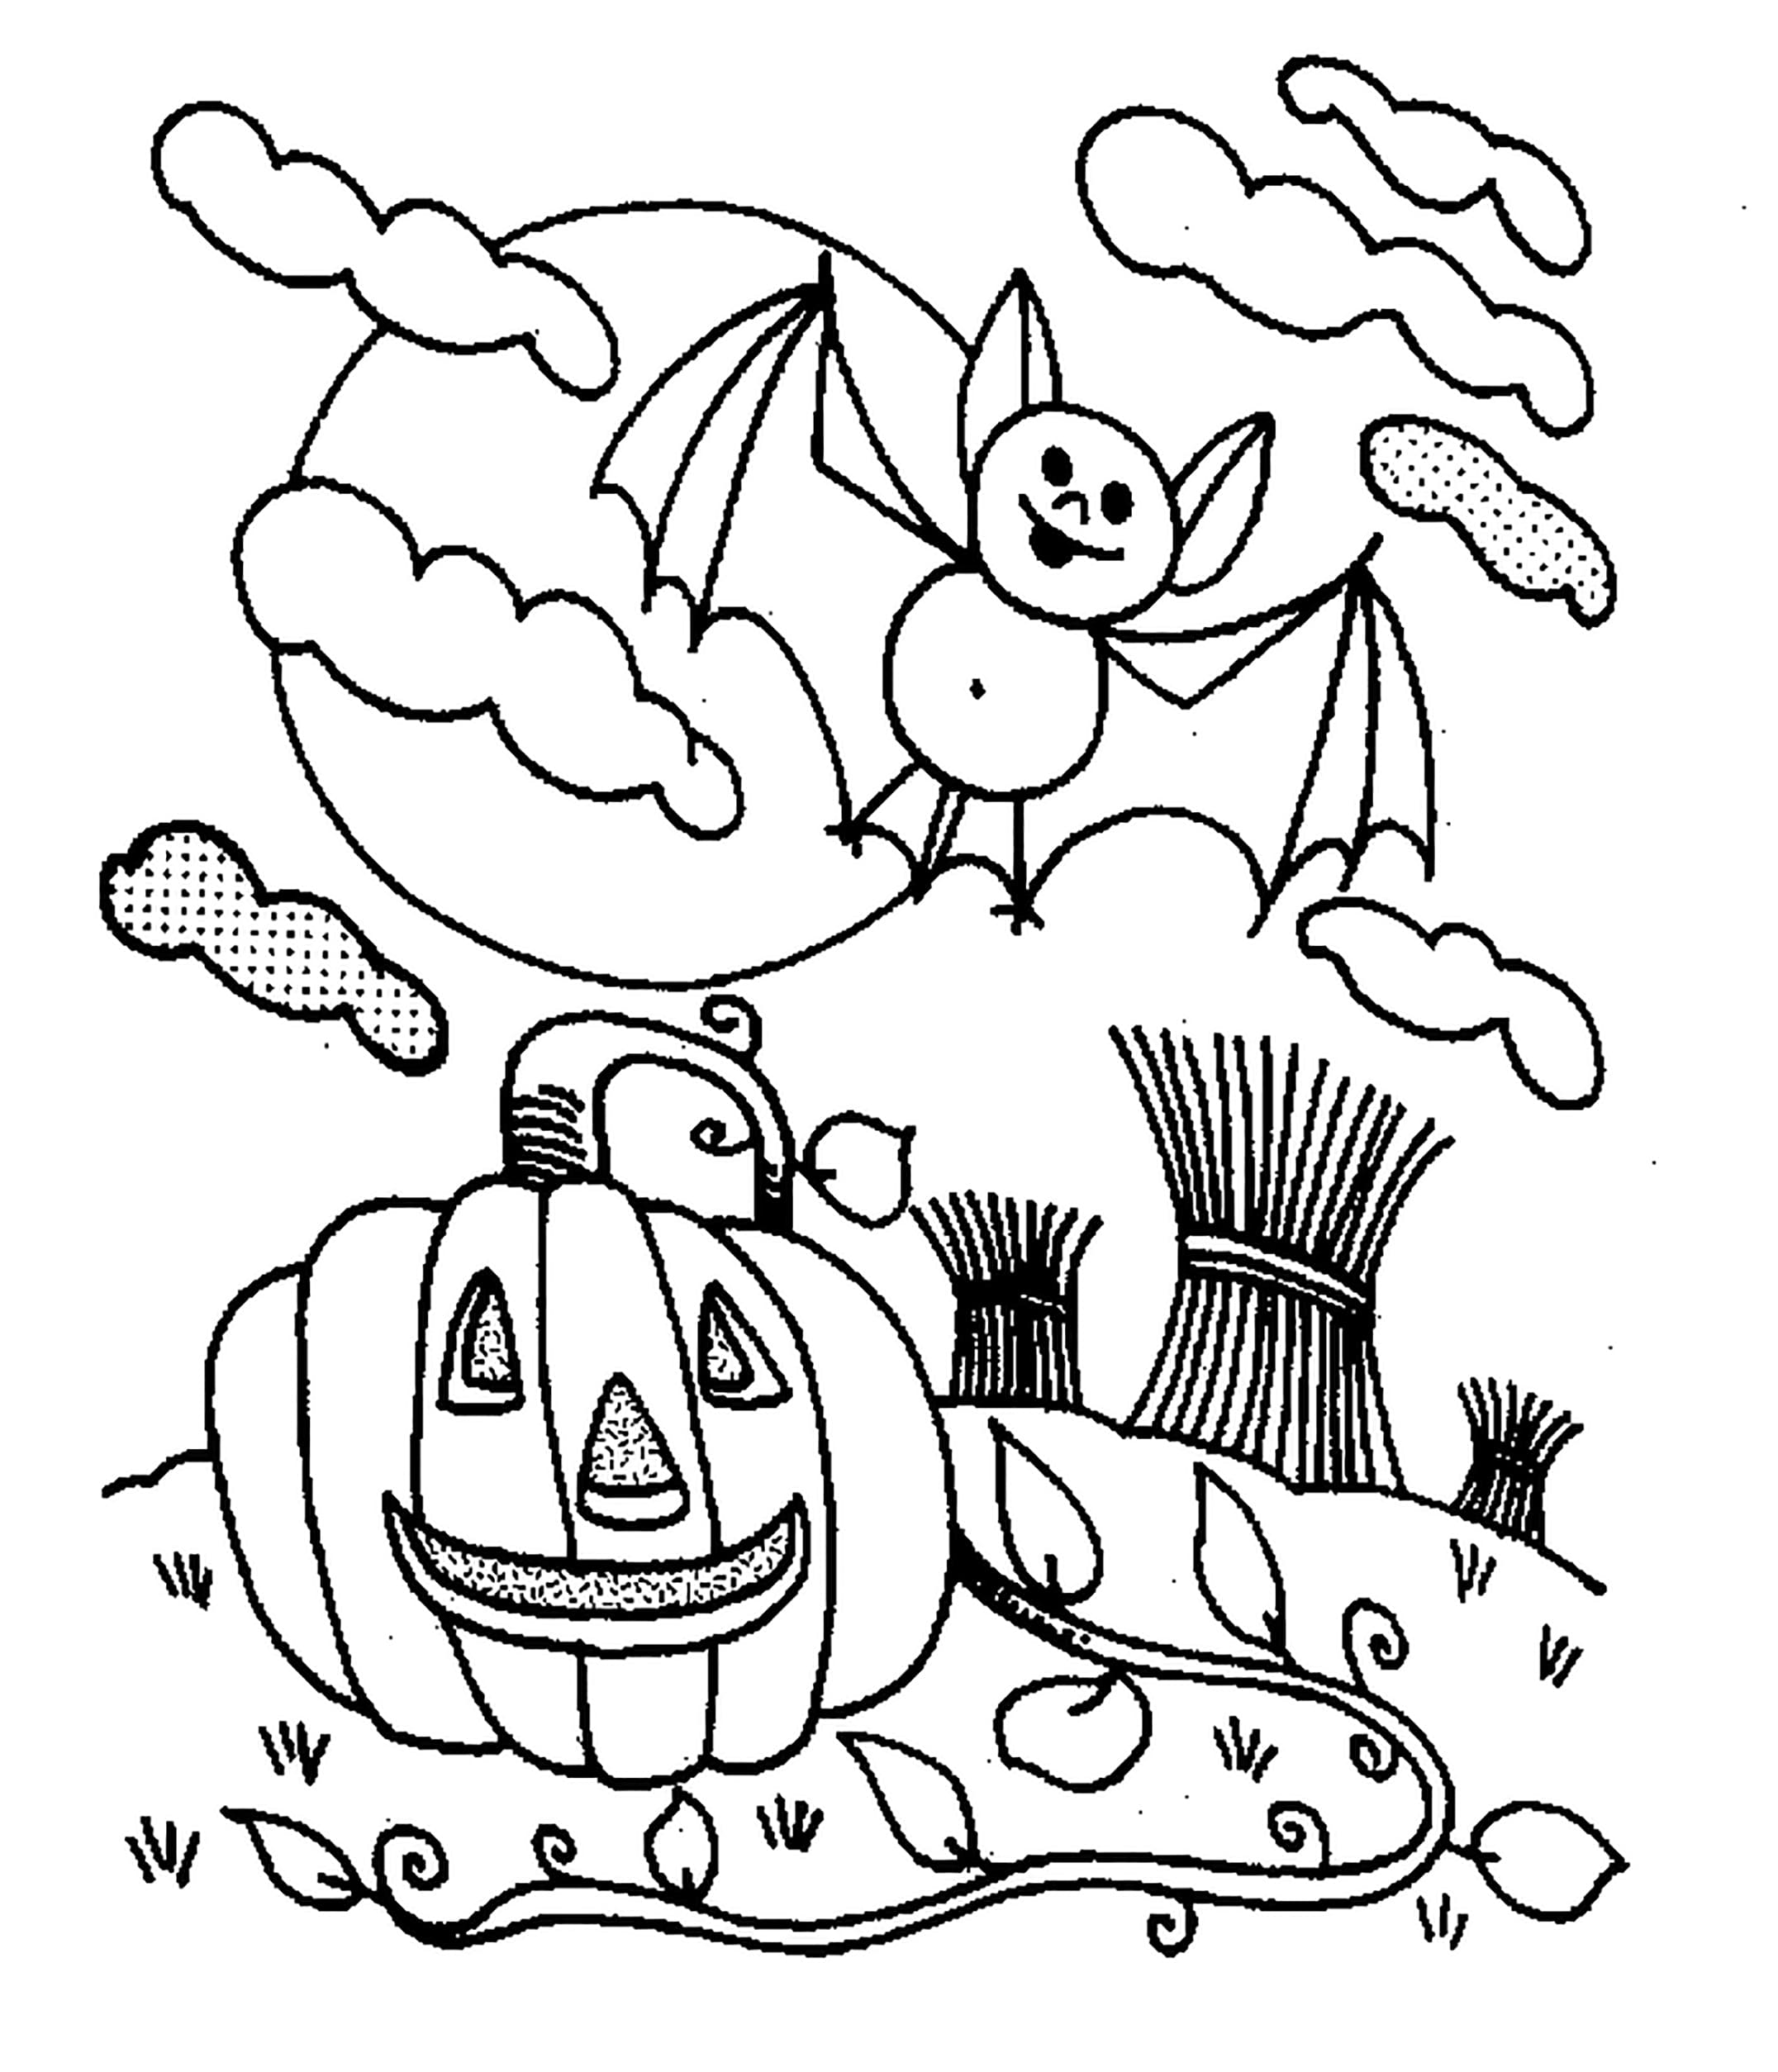 coloring sheets for halloween halloween colorings coloring halloween sheets for